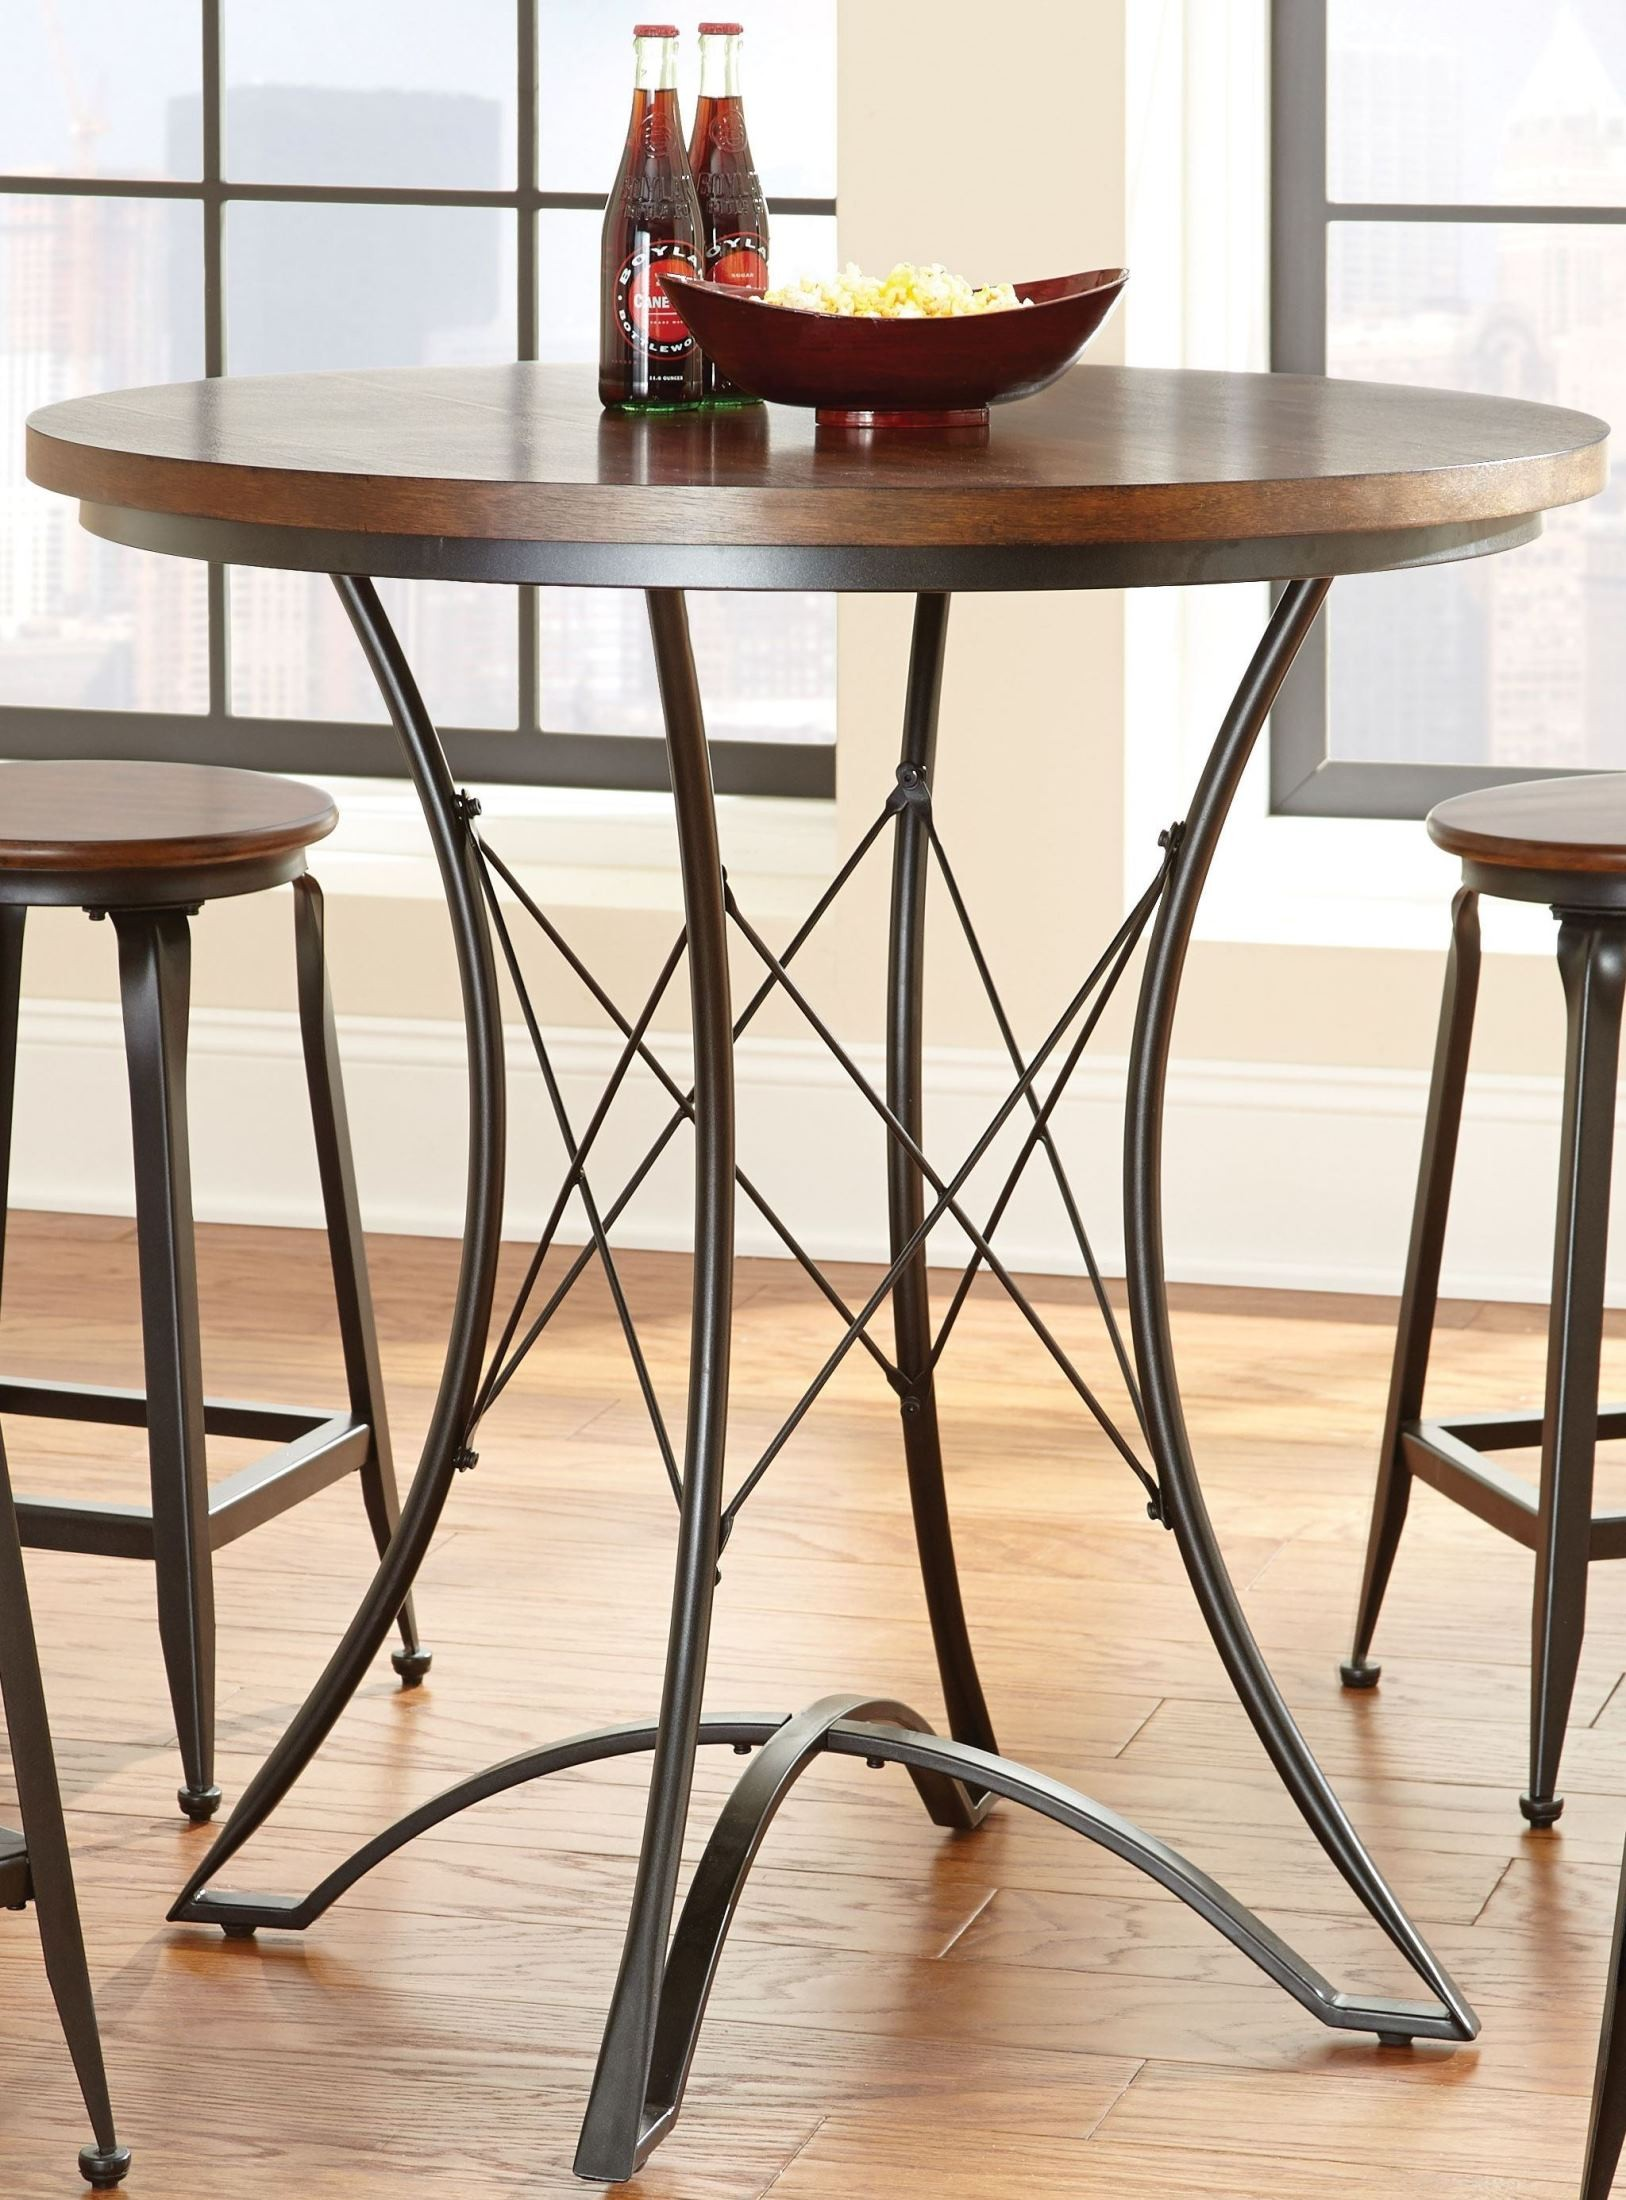 Adele Round Counter Height Dining Table from Steve Silver